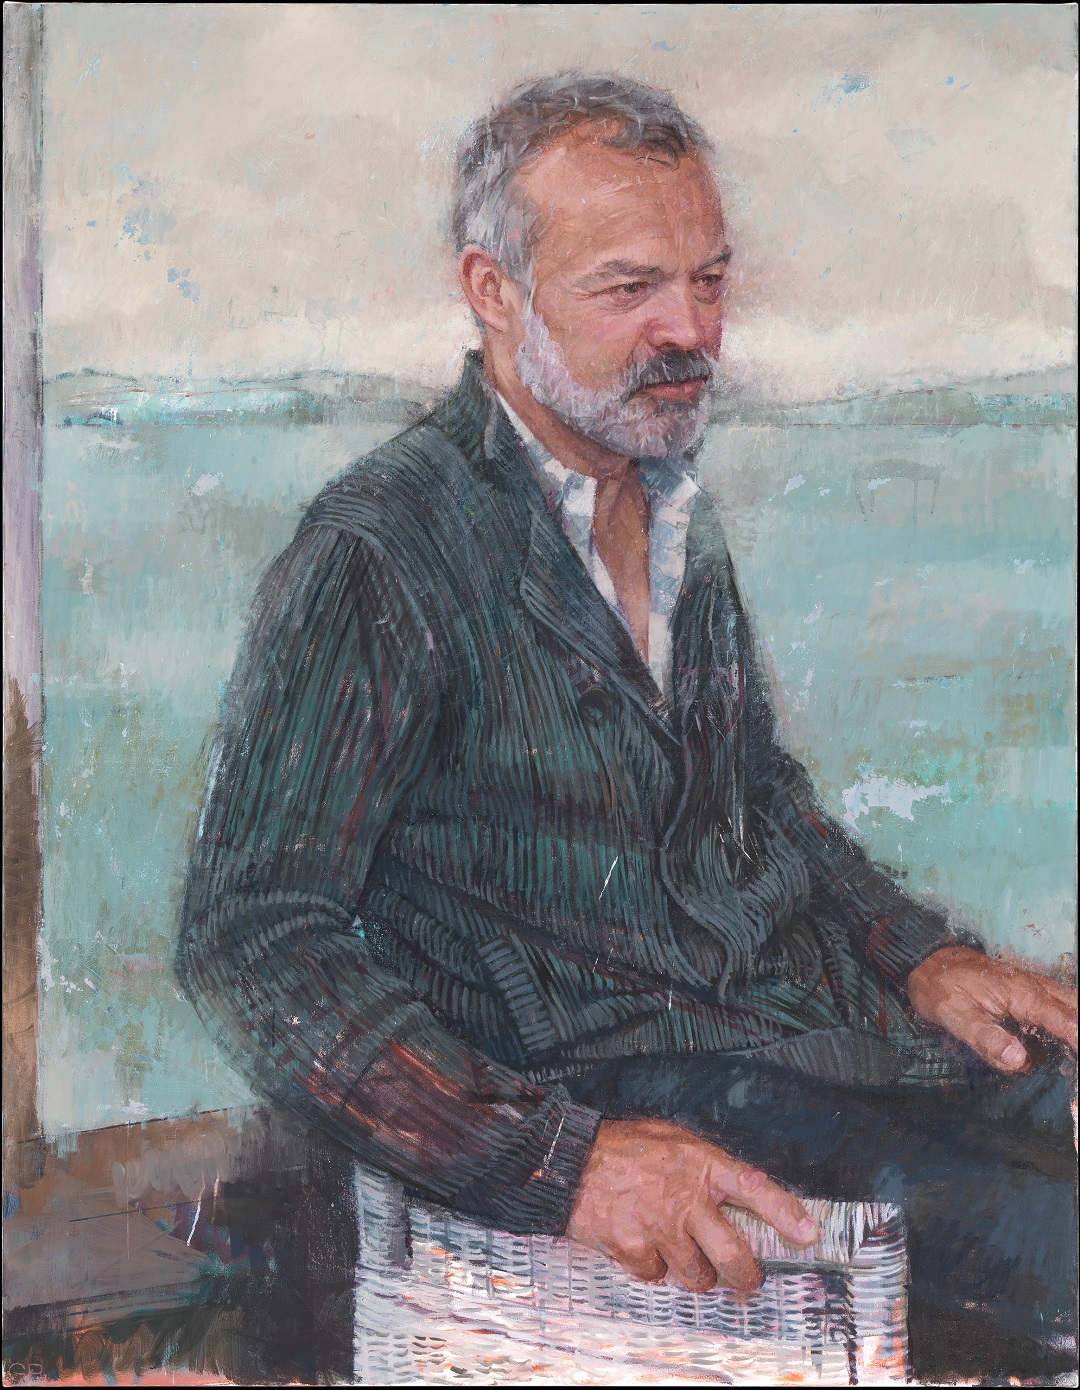 Graham Norton Gareth Reid Oil on Canvas, 105cm x 135cm, 2017 (Copyright National Gallery of Ireland)